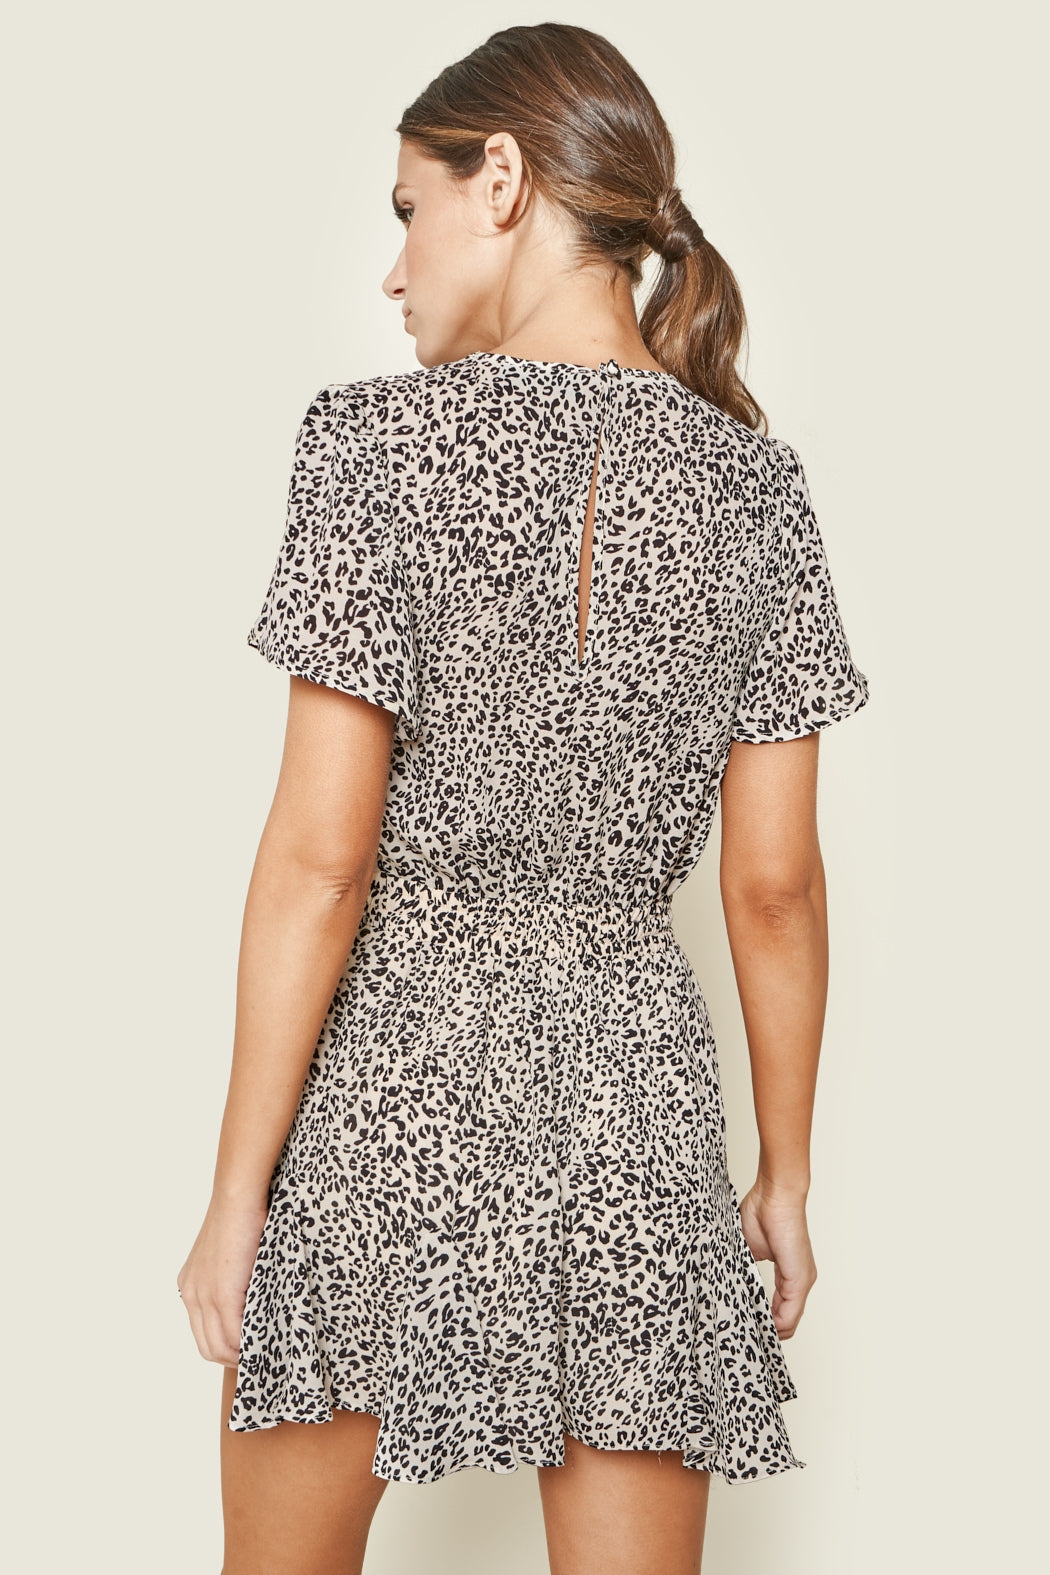 Lexi Drawstring Romper - Leopard Print - MOD&SOUL - Contemporary Women's Clothing